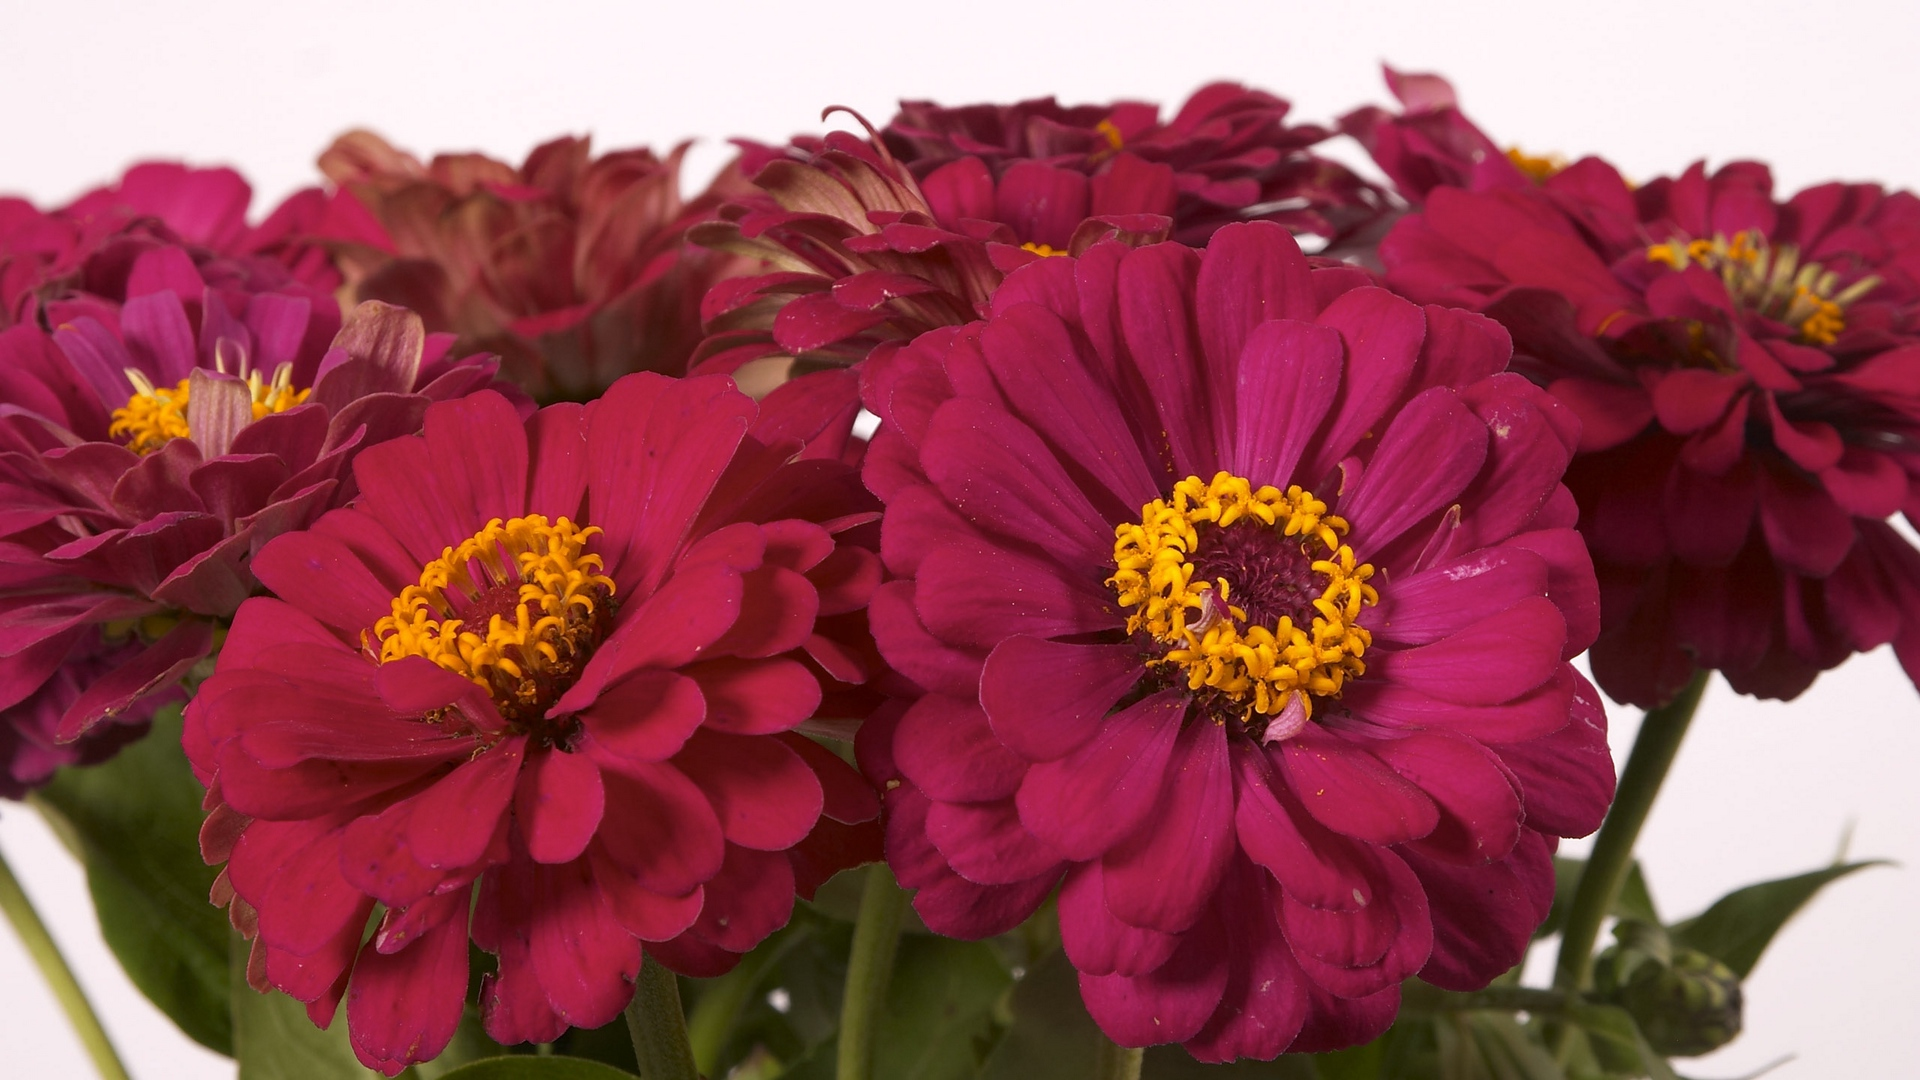 zinnias flowers bouquet close up x